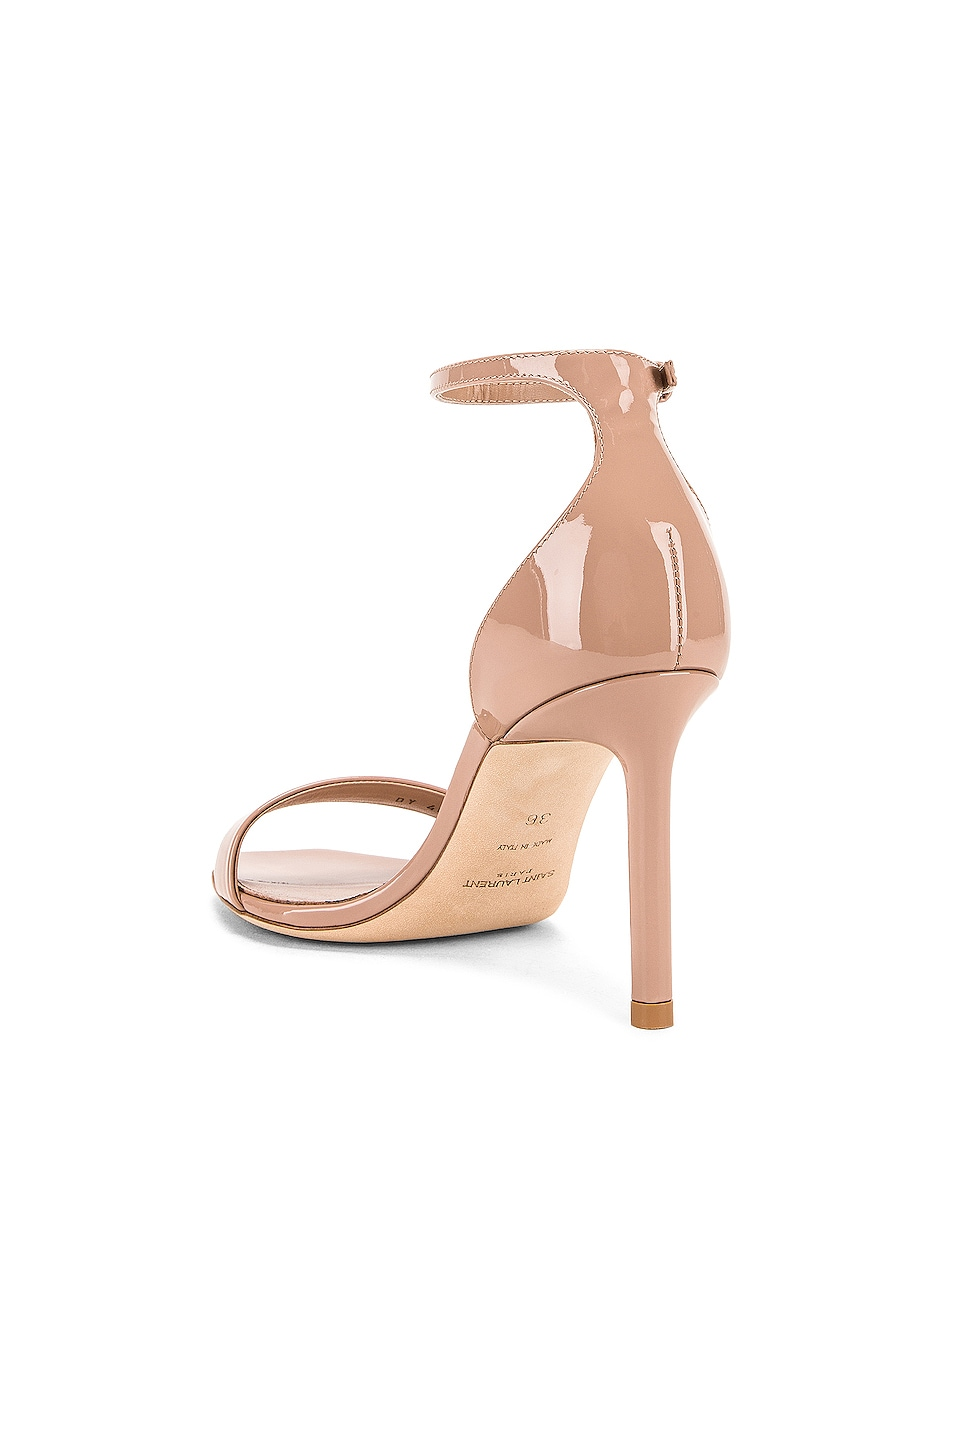 Image 3 of Saint Laurent Amber Ankle Strap Sandals in Nude Rose